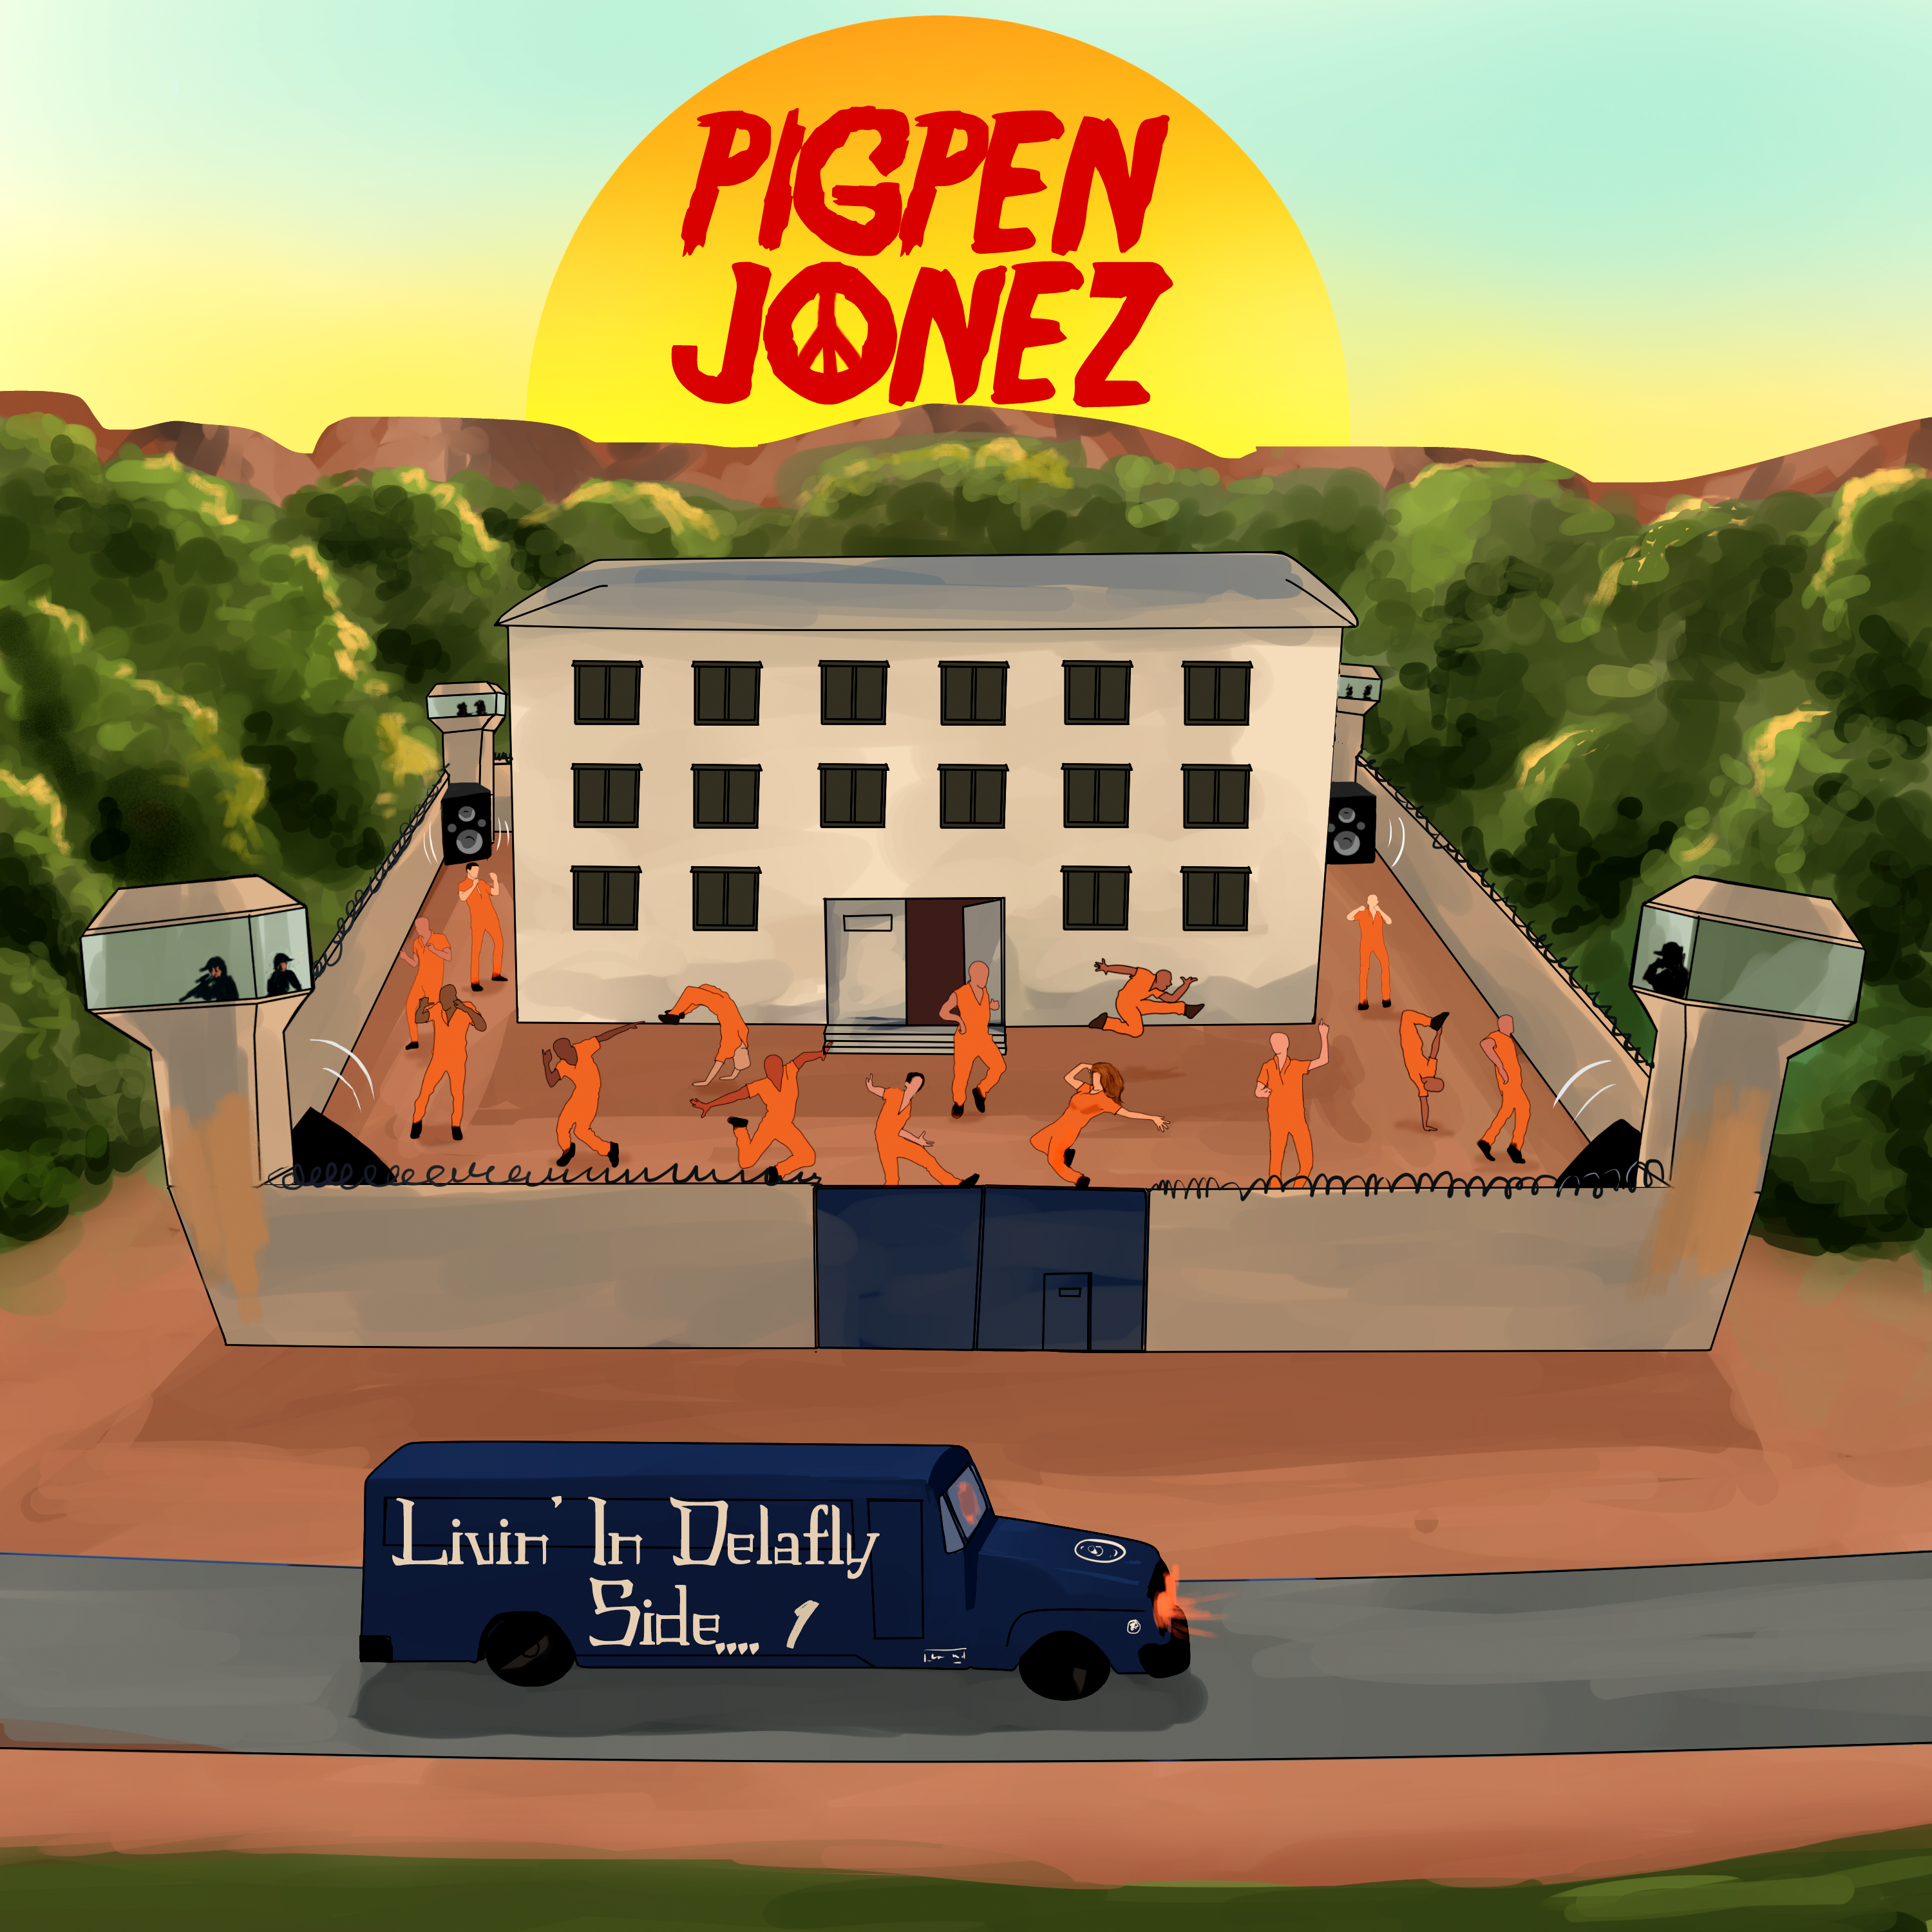 Retro Alternative Rock Band PIGPEN JONEZ Releases Socially Conscience Rock Music EP Livin' In Delafly Side….1